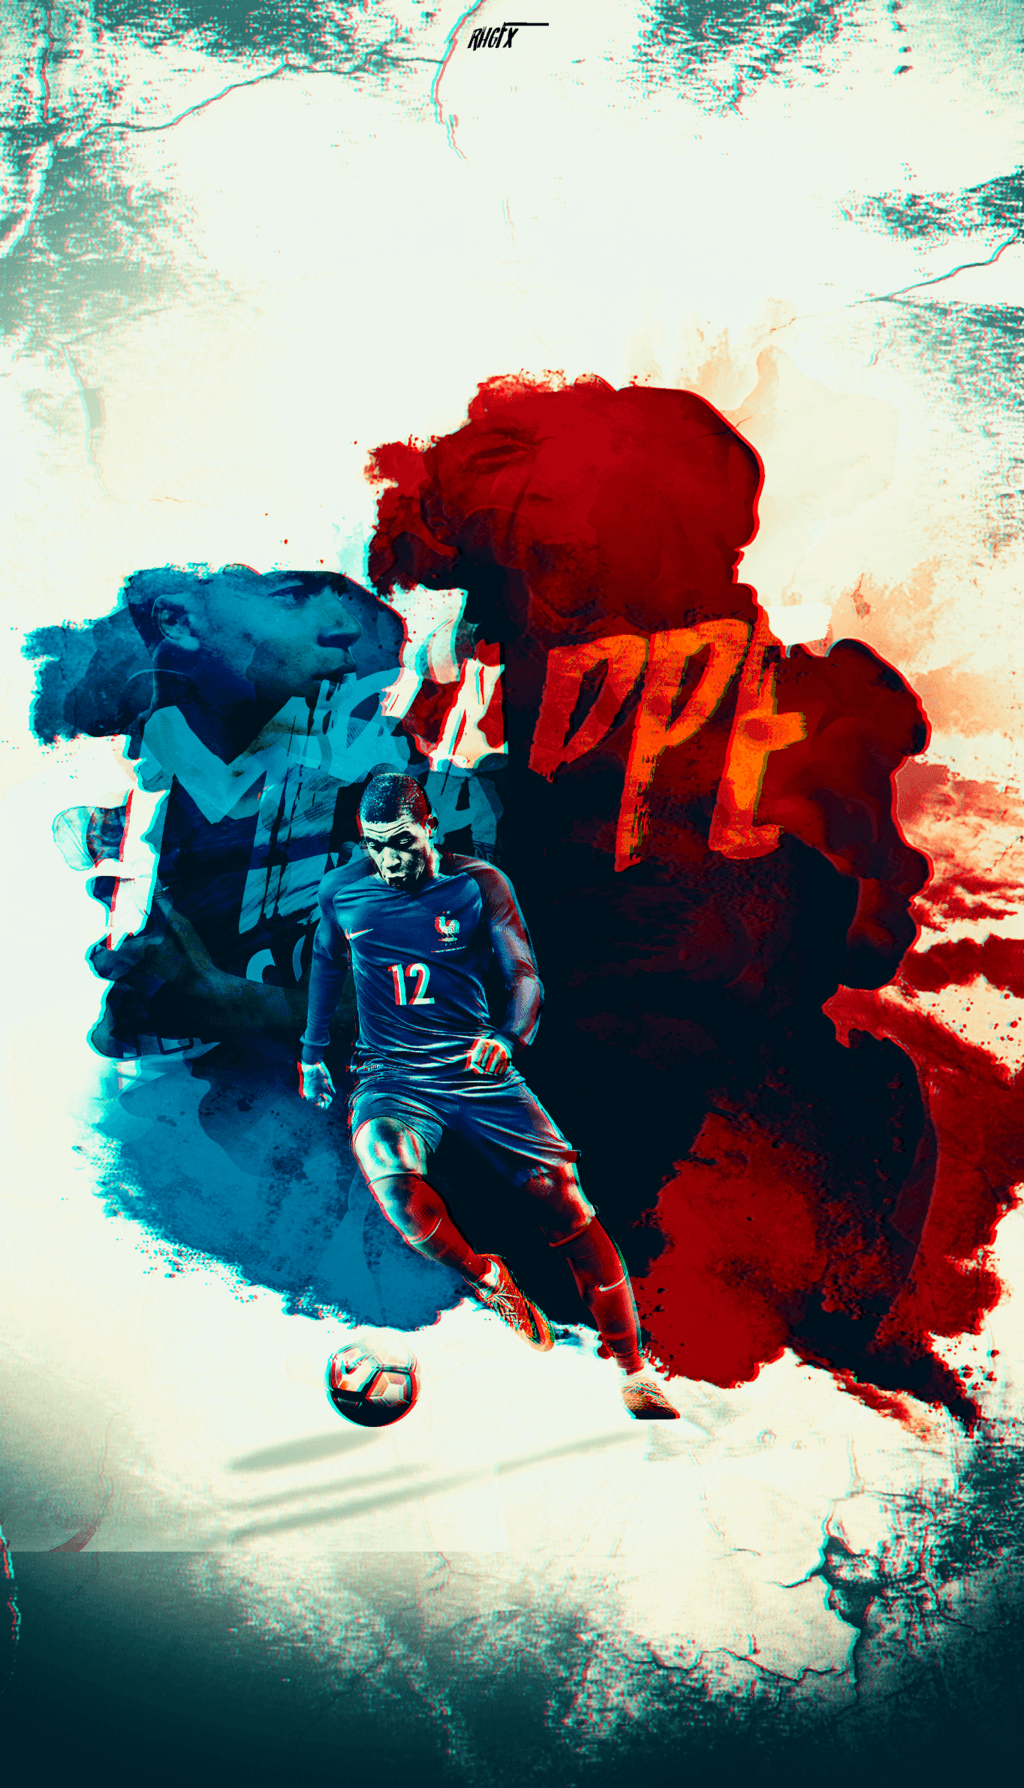 Kylian Mbappe | Wallpaper | 2017 by RHGFX2 on DeviantArt